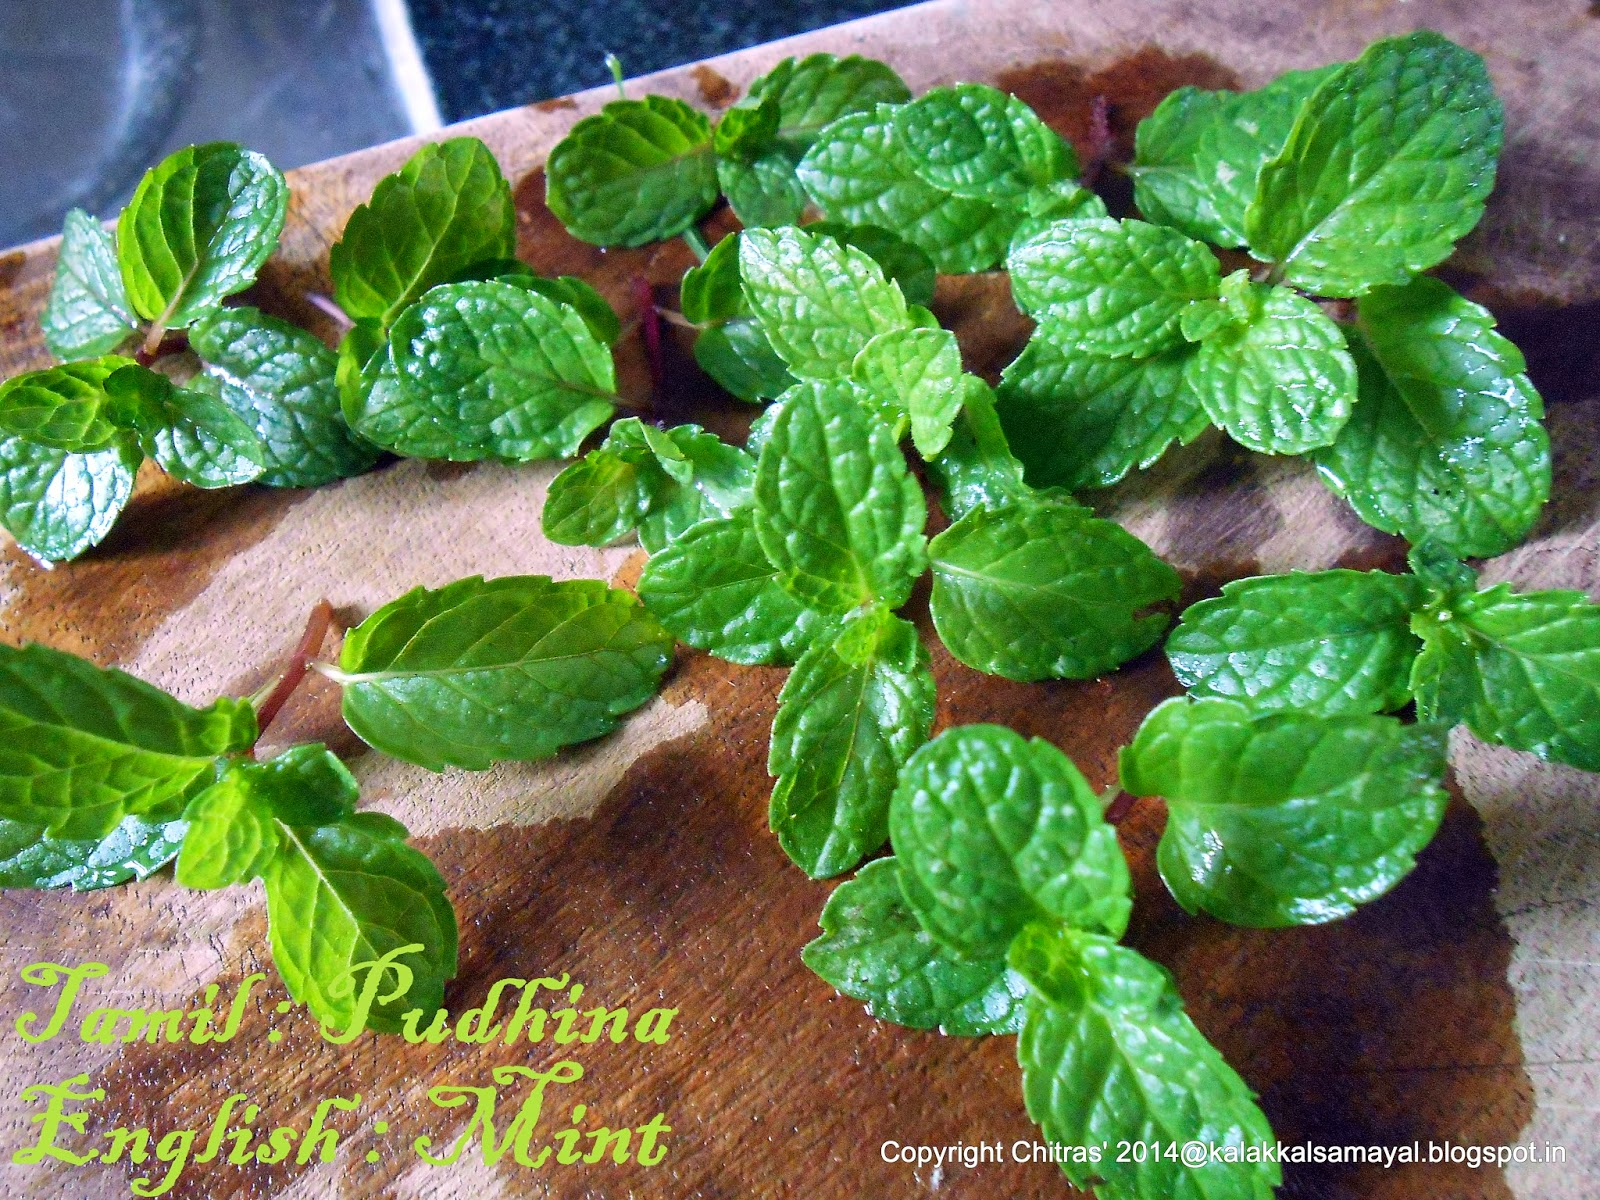 Pudina ilai [ Mint leaves ]